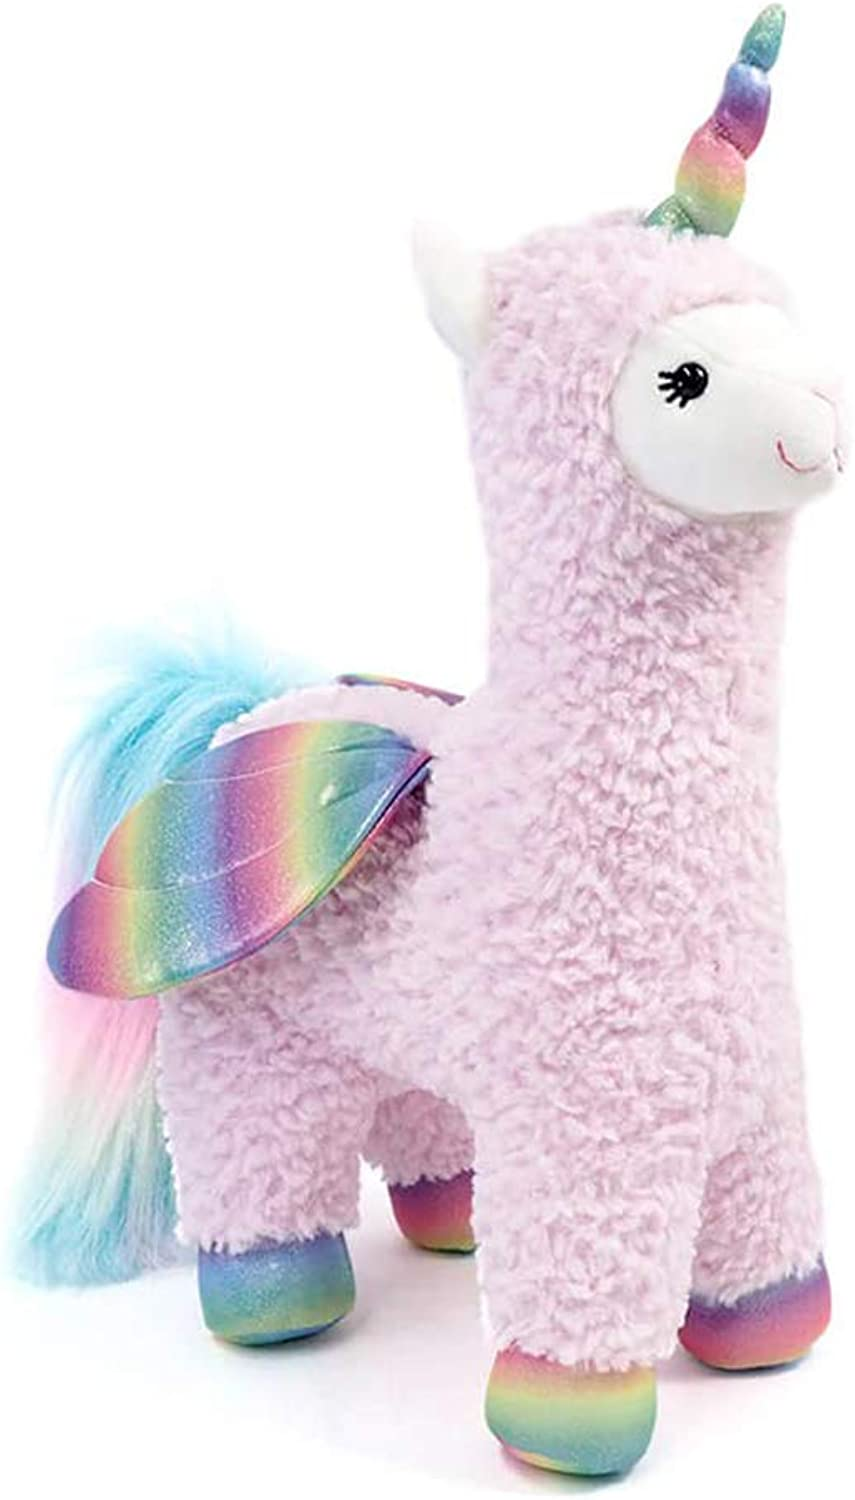 GUND Rainbow Sparkles Llamacorn with Wings Plush Stuffed Toy, 15.5